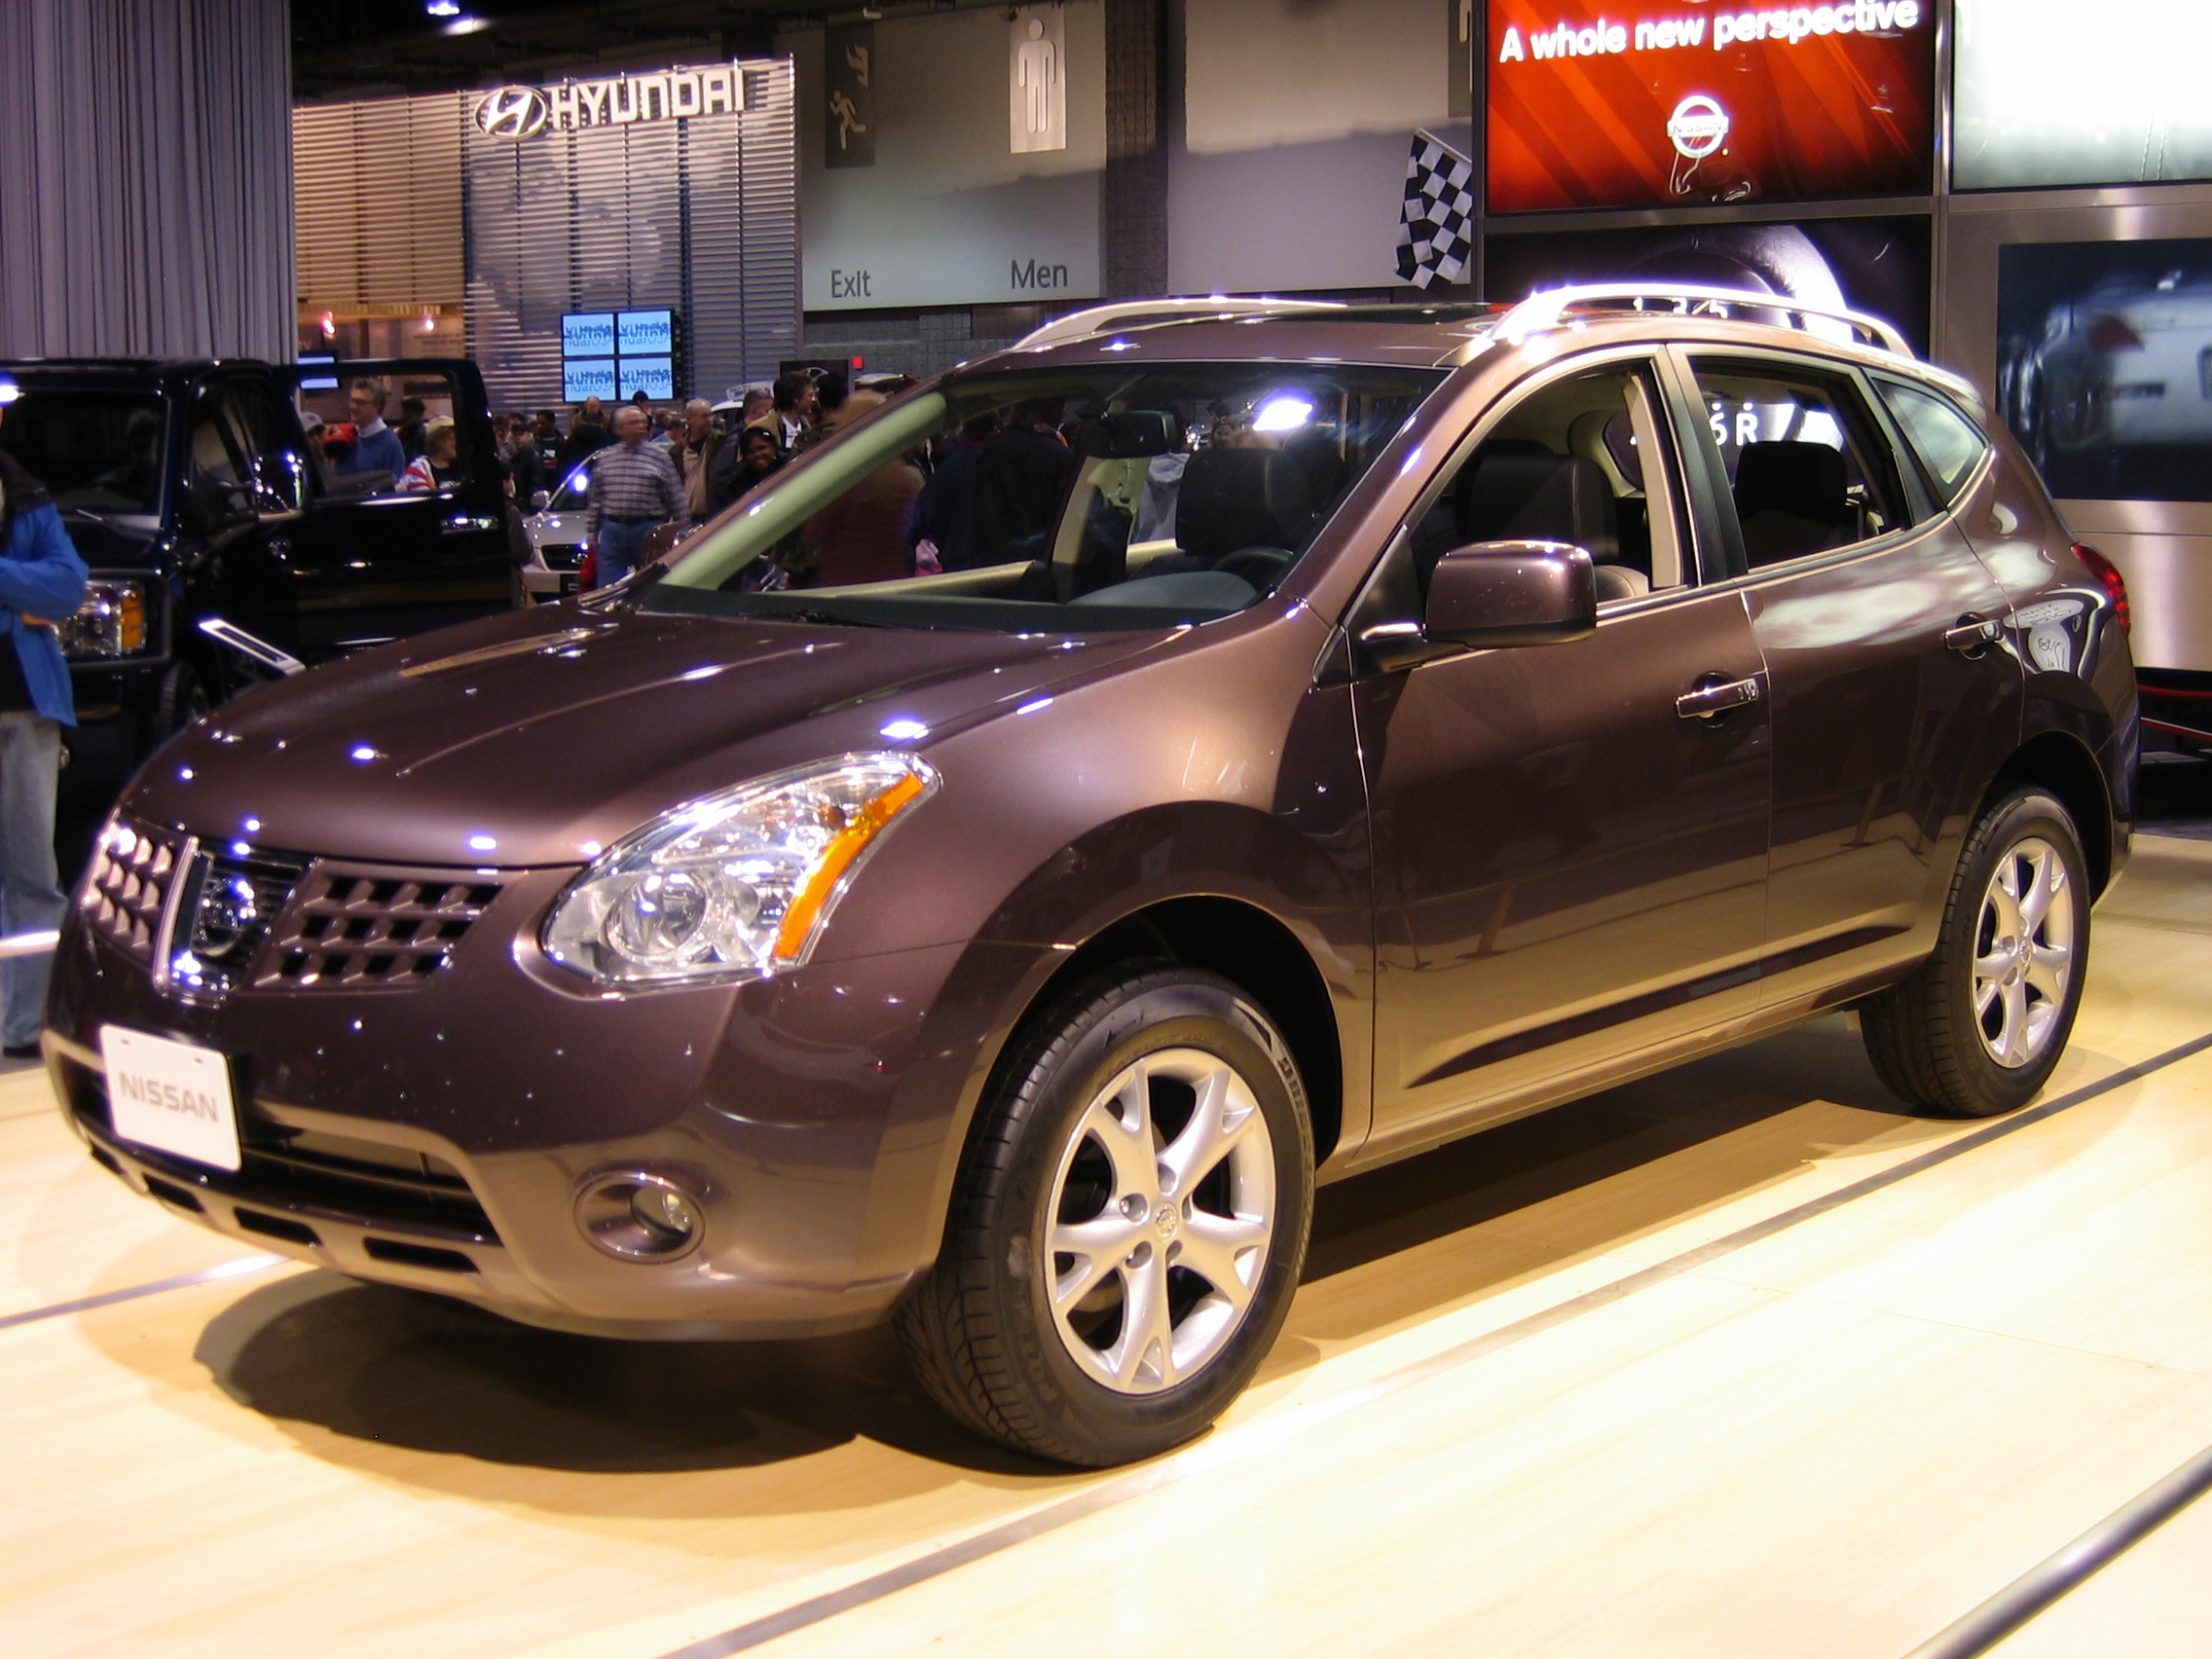 Nissan Rogue 2007: Review, Amazing Pictures and Images – Look at the car